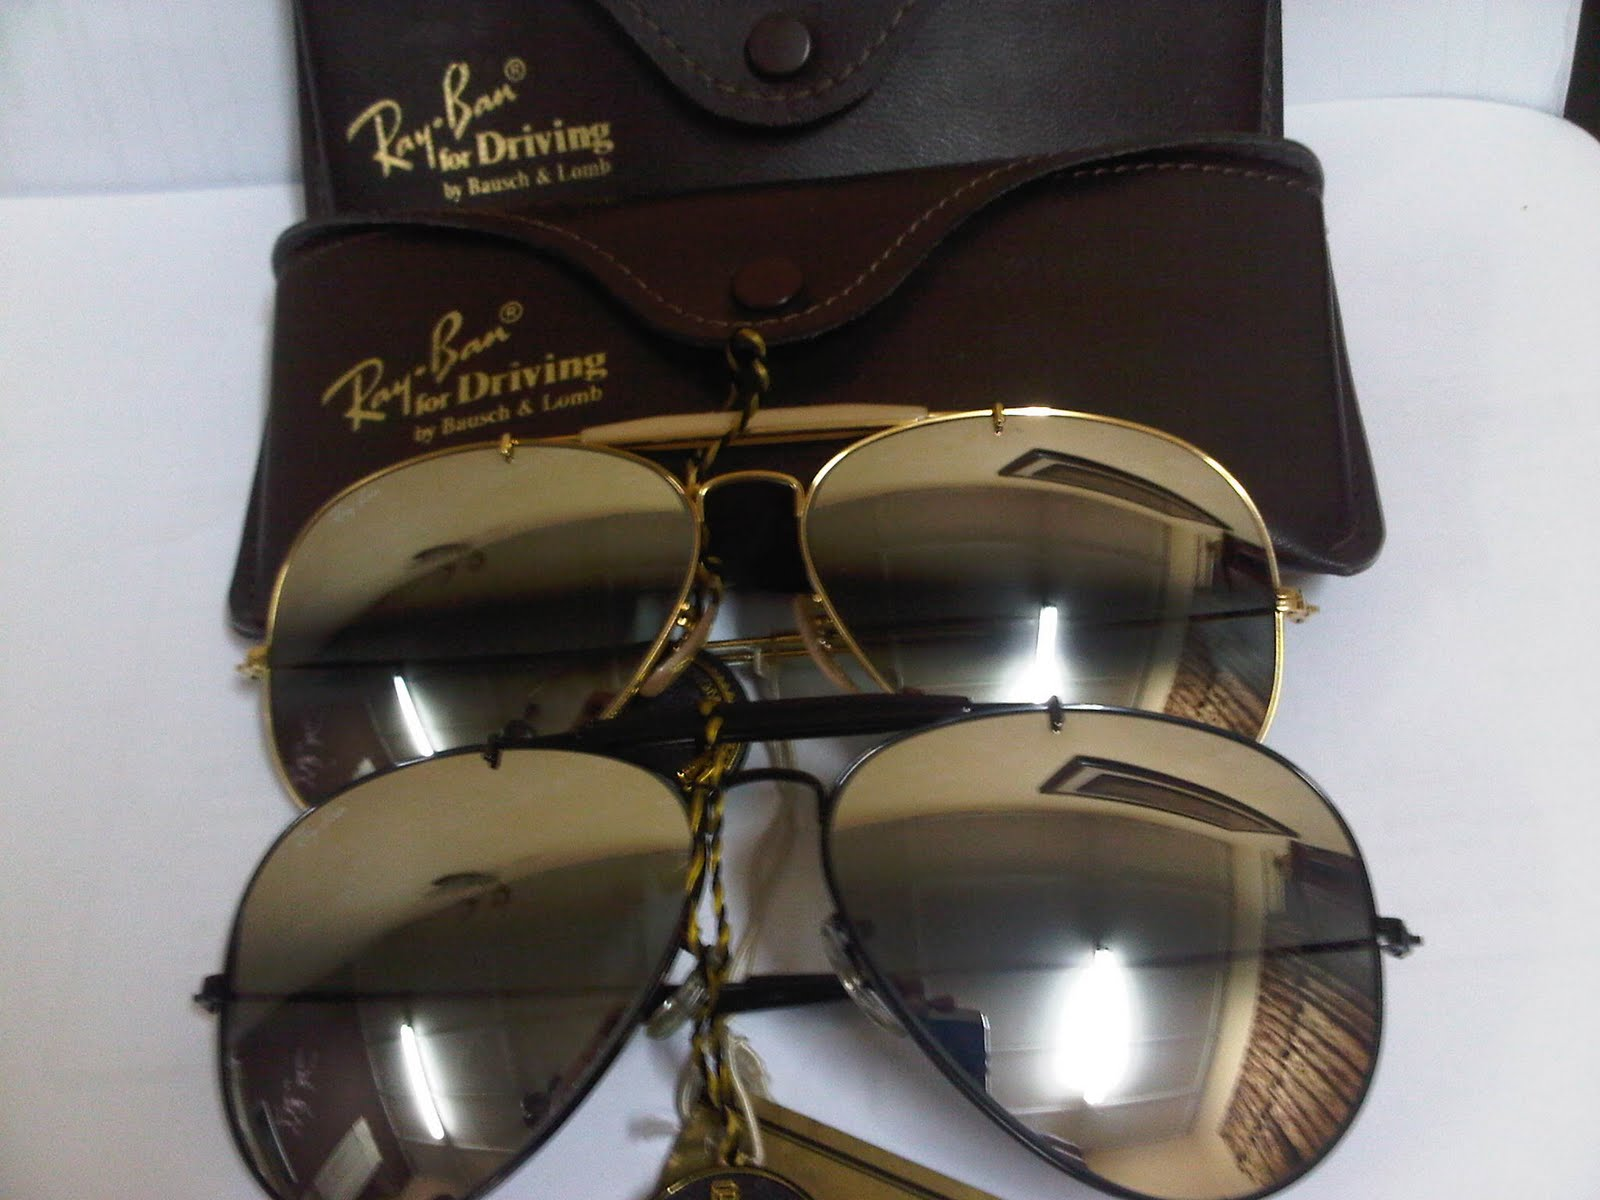 6c52be445 Ray Ban Survivors Collection. Welcome To AdanZaidan Blog Site: ...